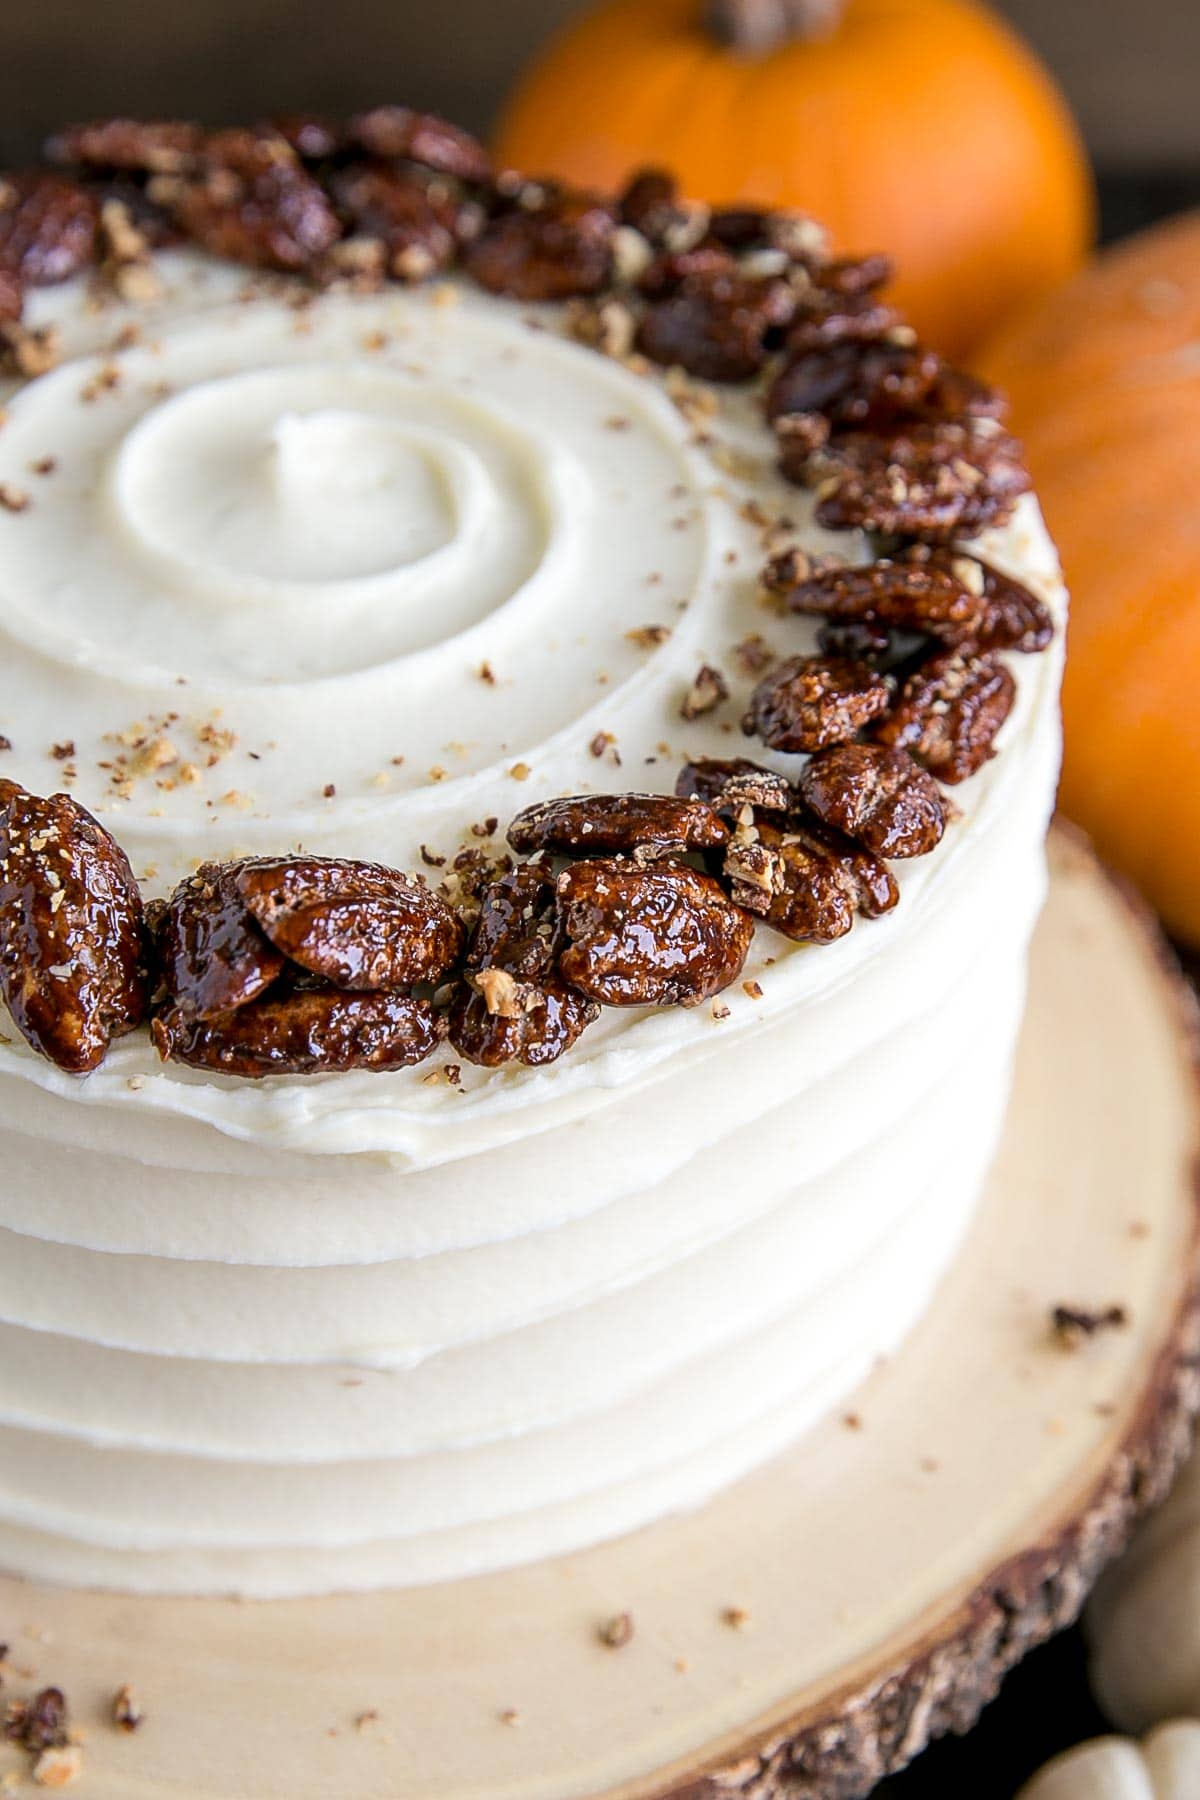 Candied pecans on top of a pumpkin cake